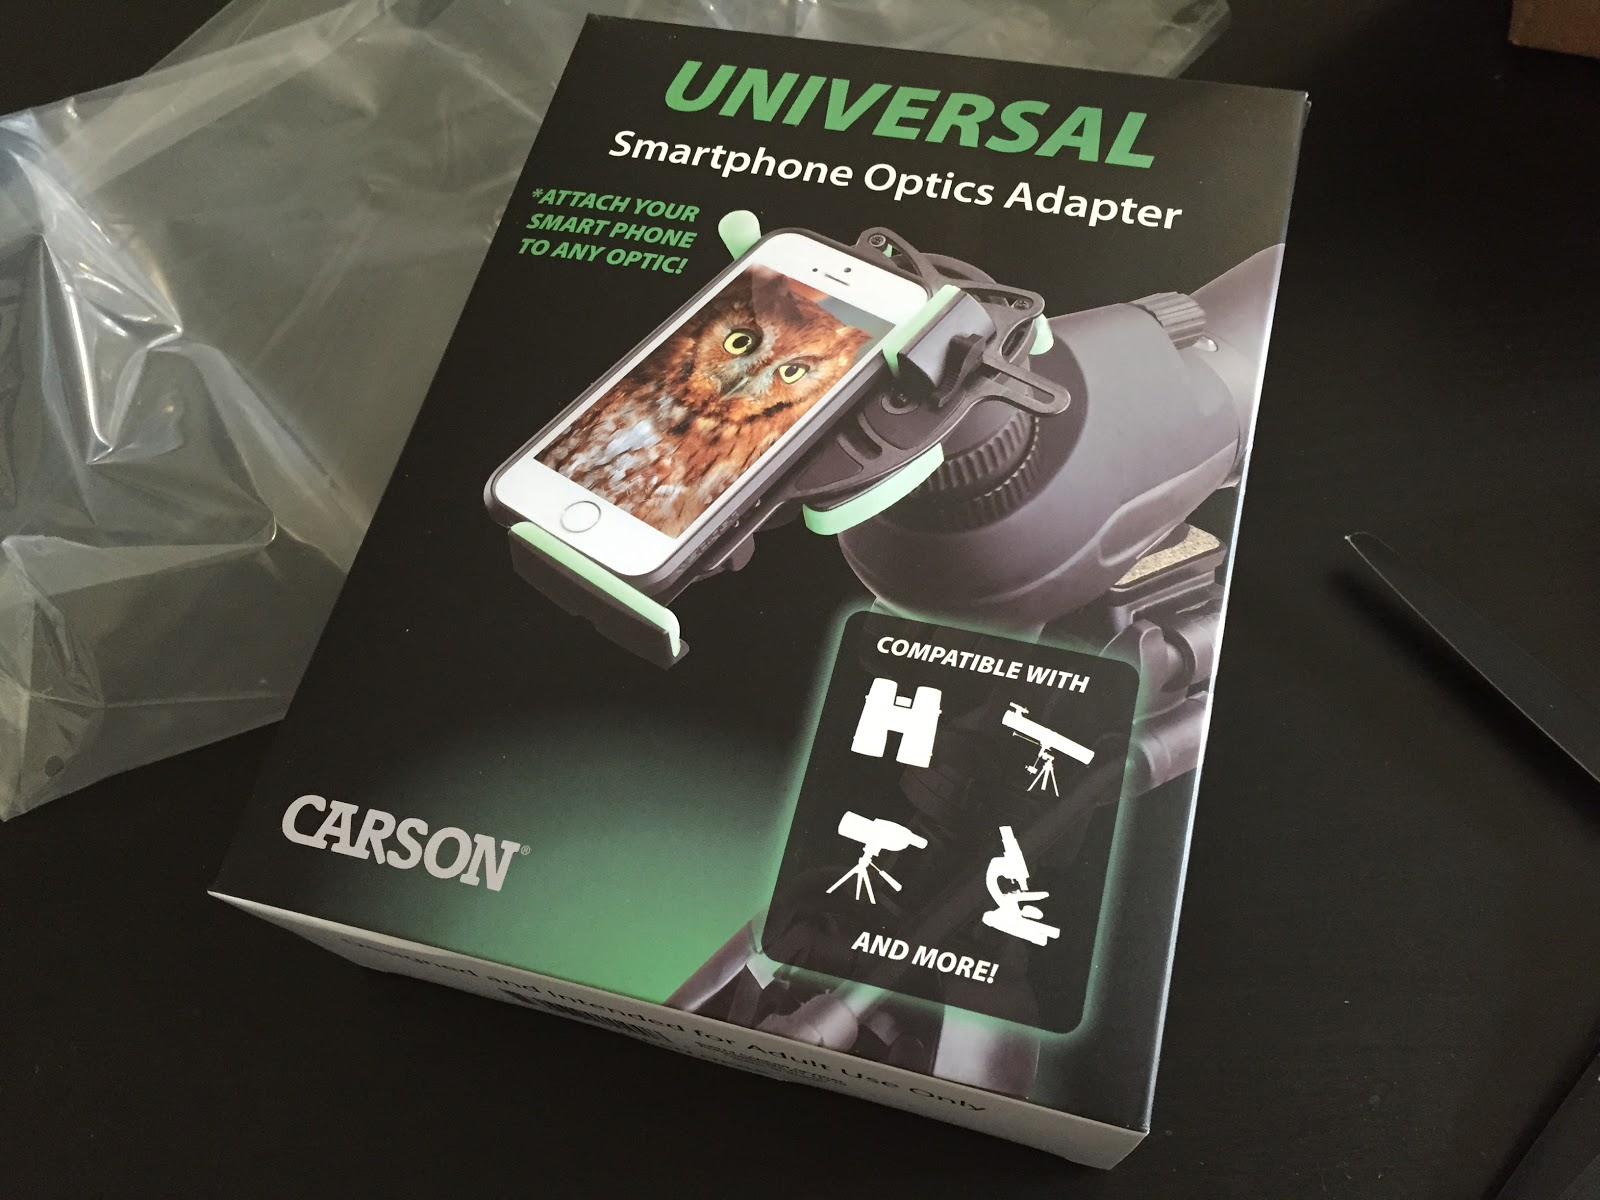 carson universal package front